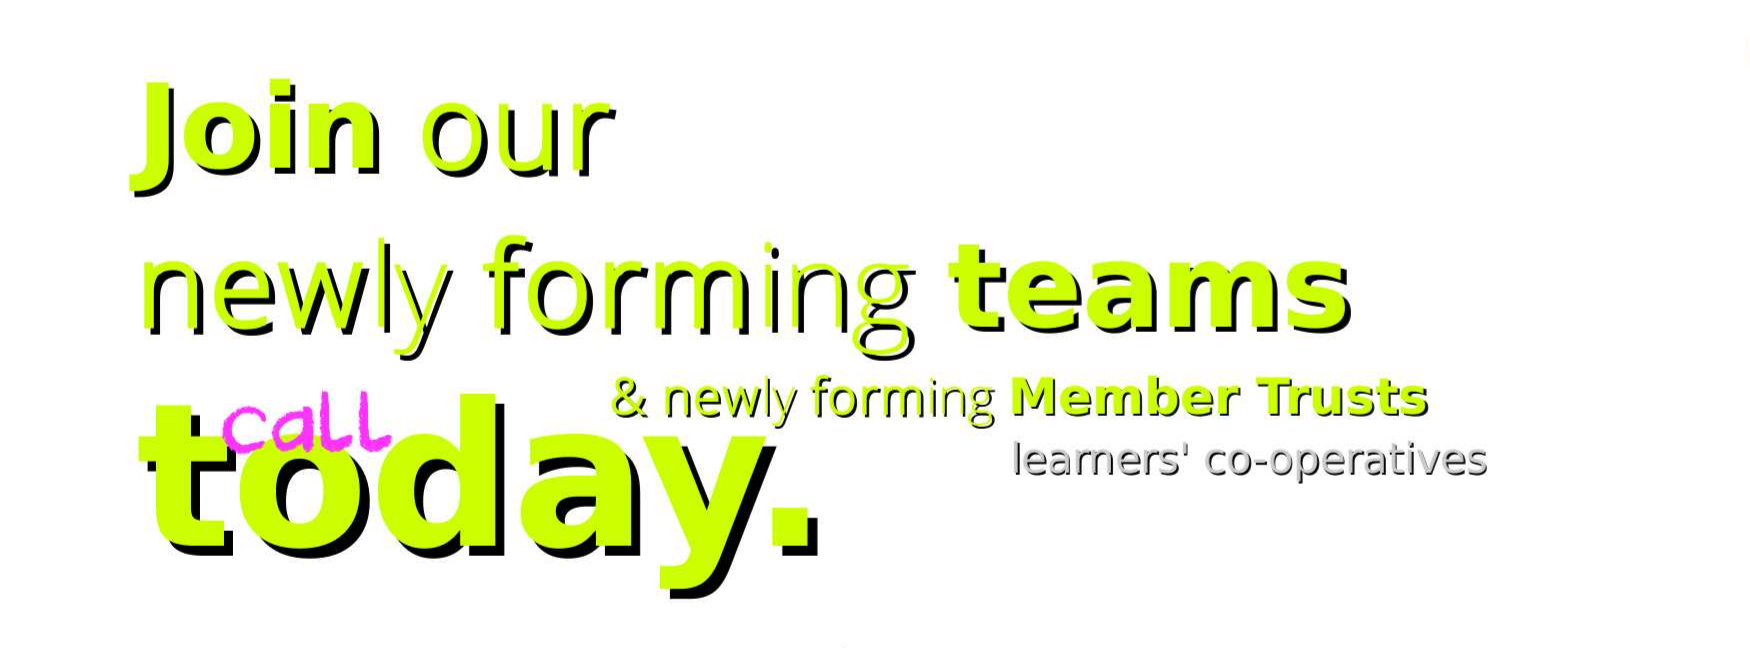 join our new forming teams